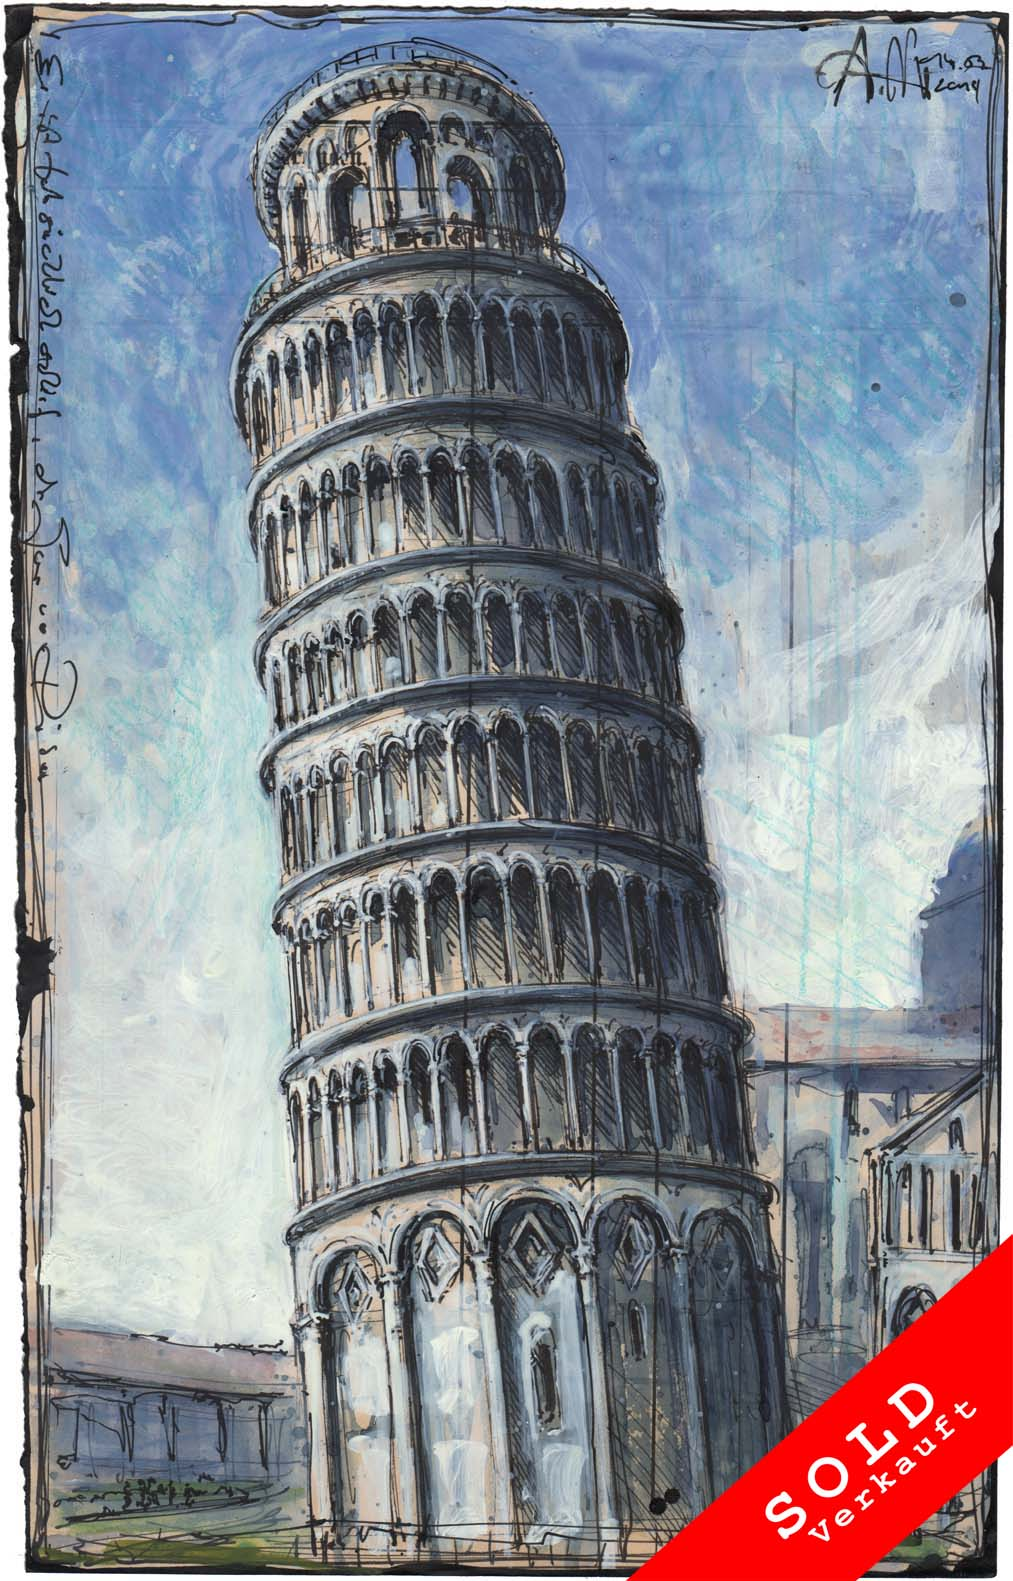 He is actually wrong, the Tower of Pisa